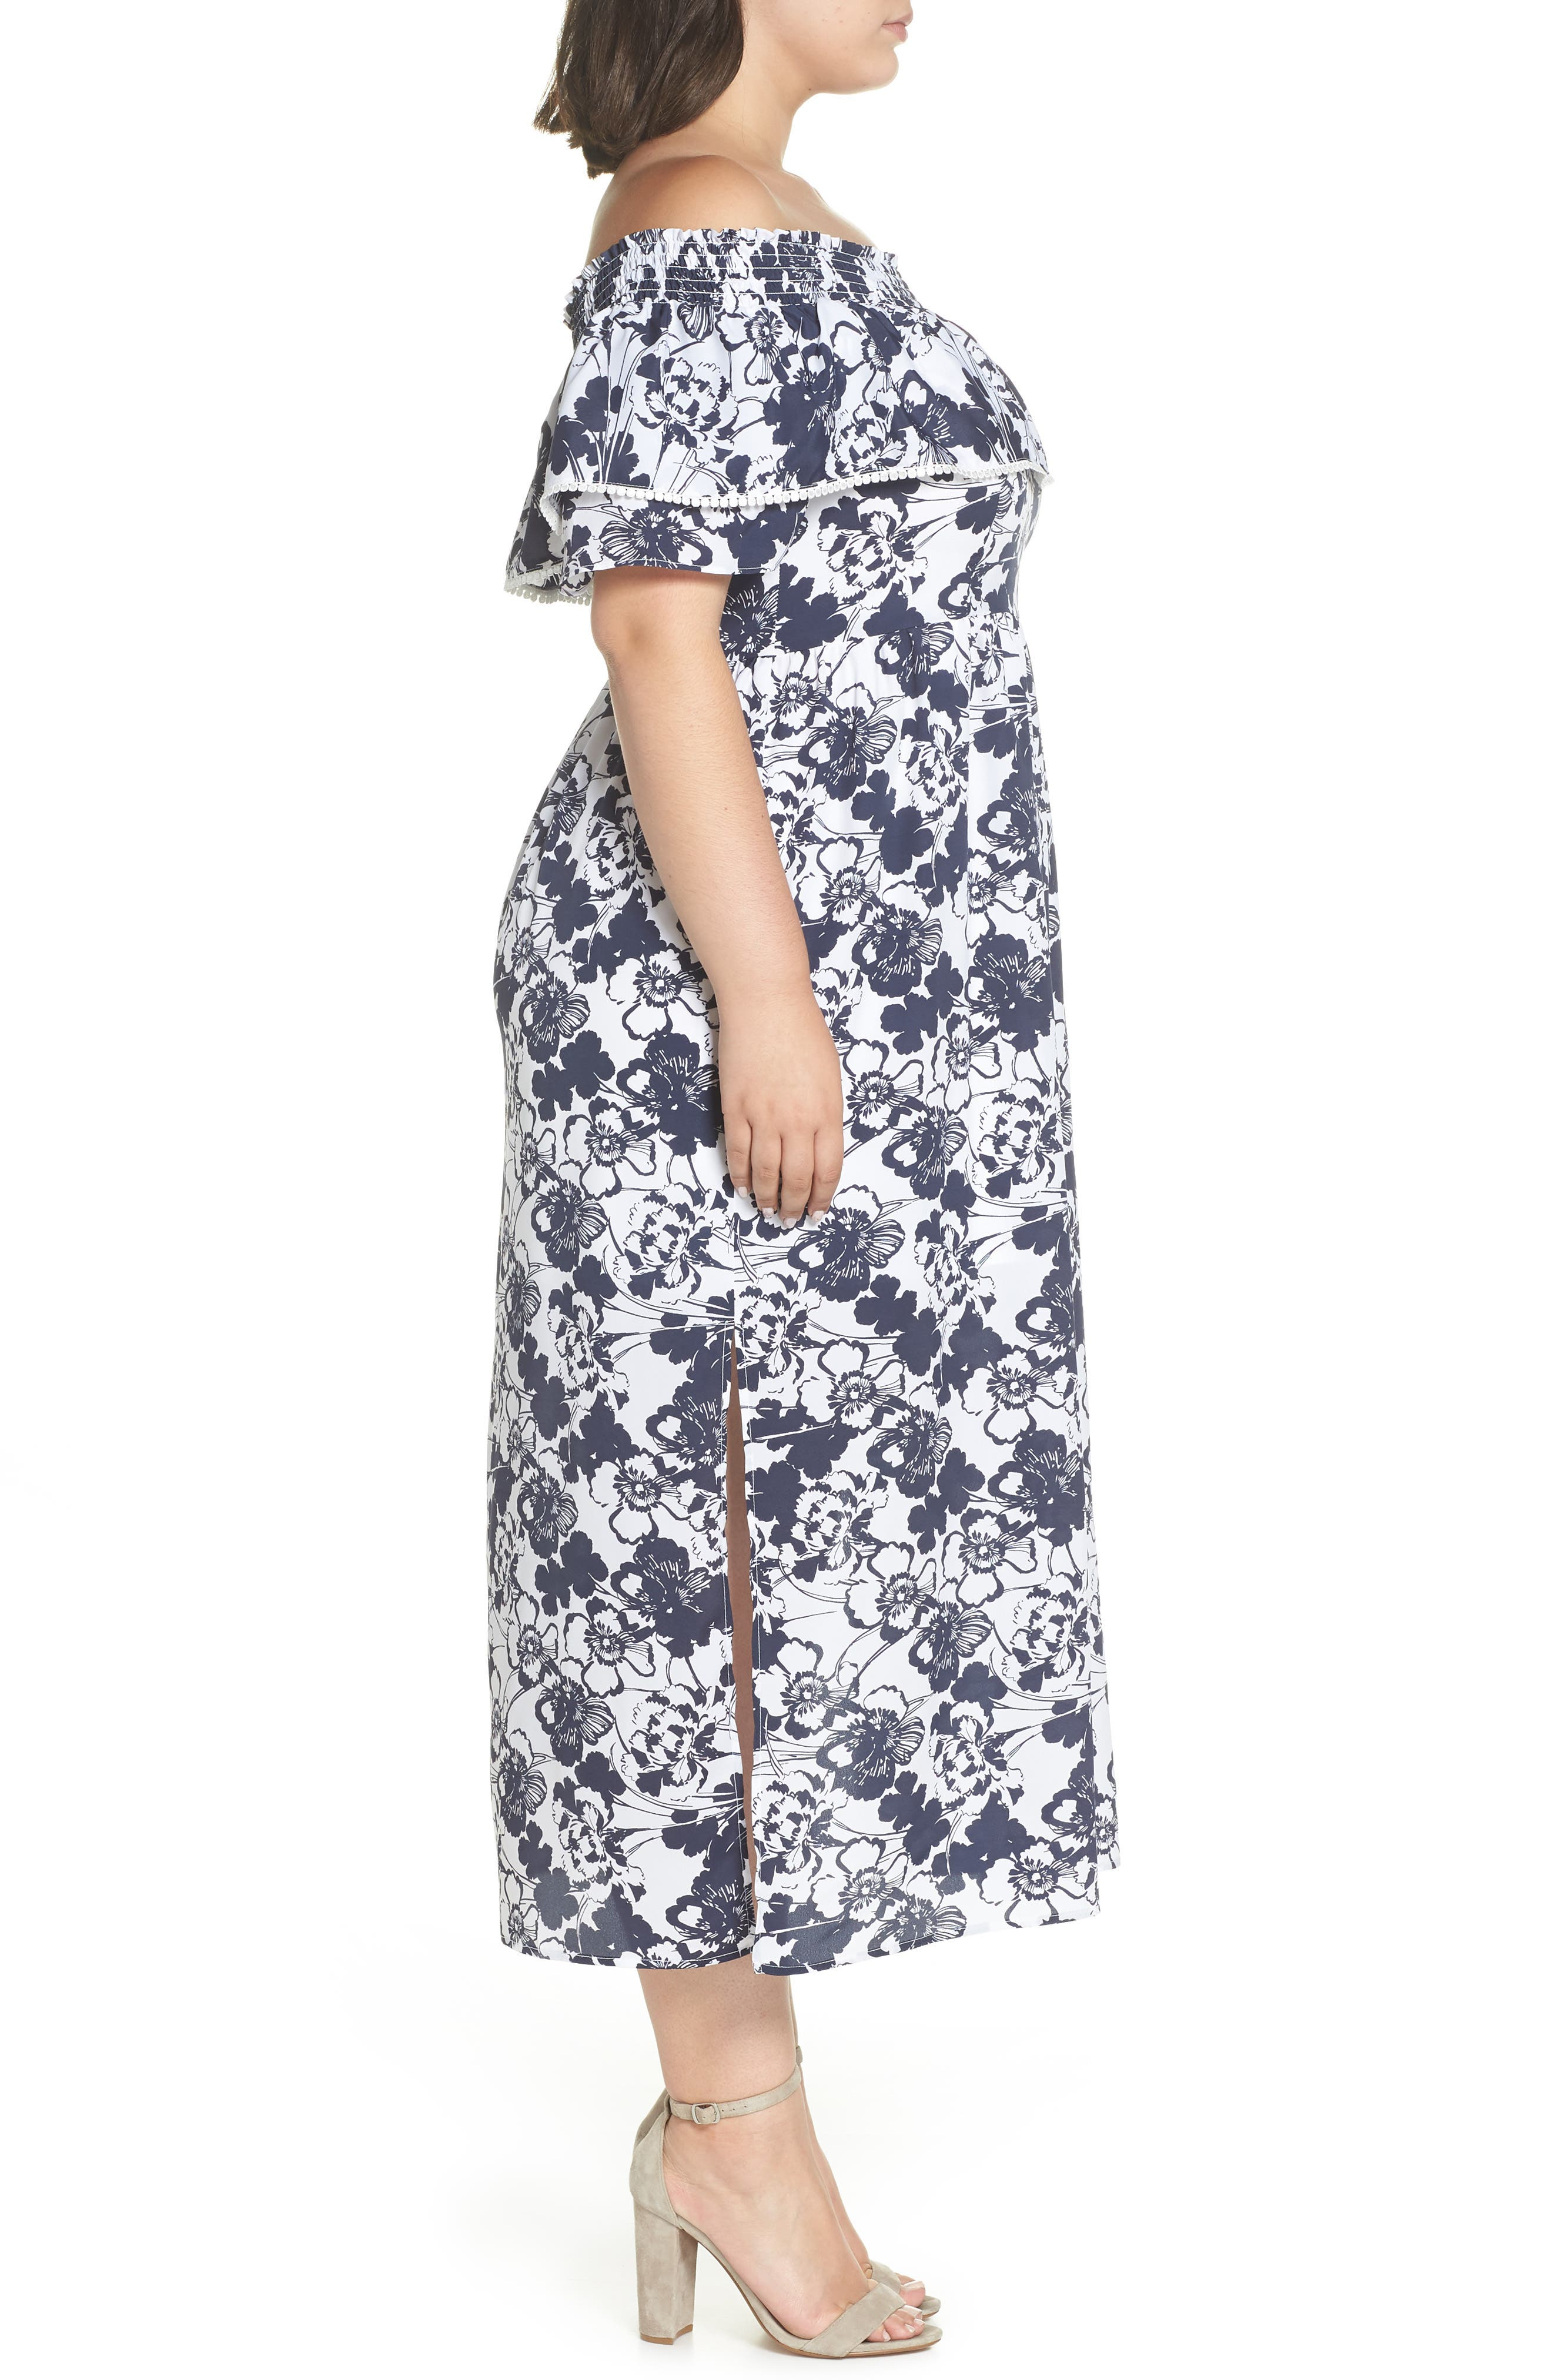 Off the Shoulder Ruffle Maxi Dress,                             Alternate thumbnail 10, color,                             Navy Ivory Floral Print